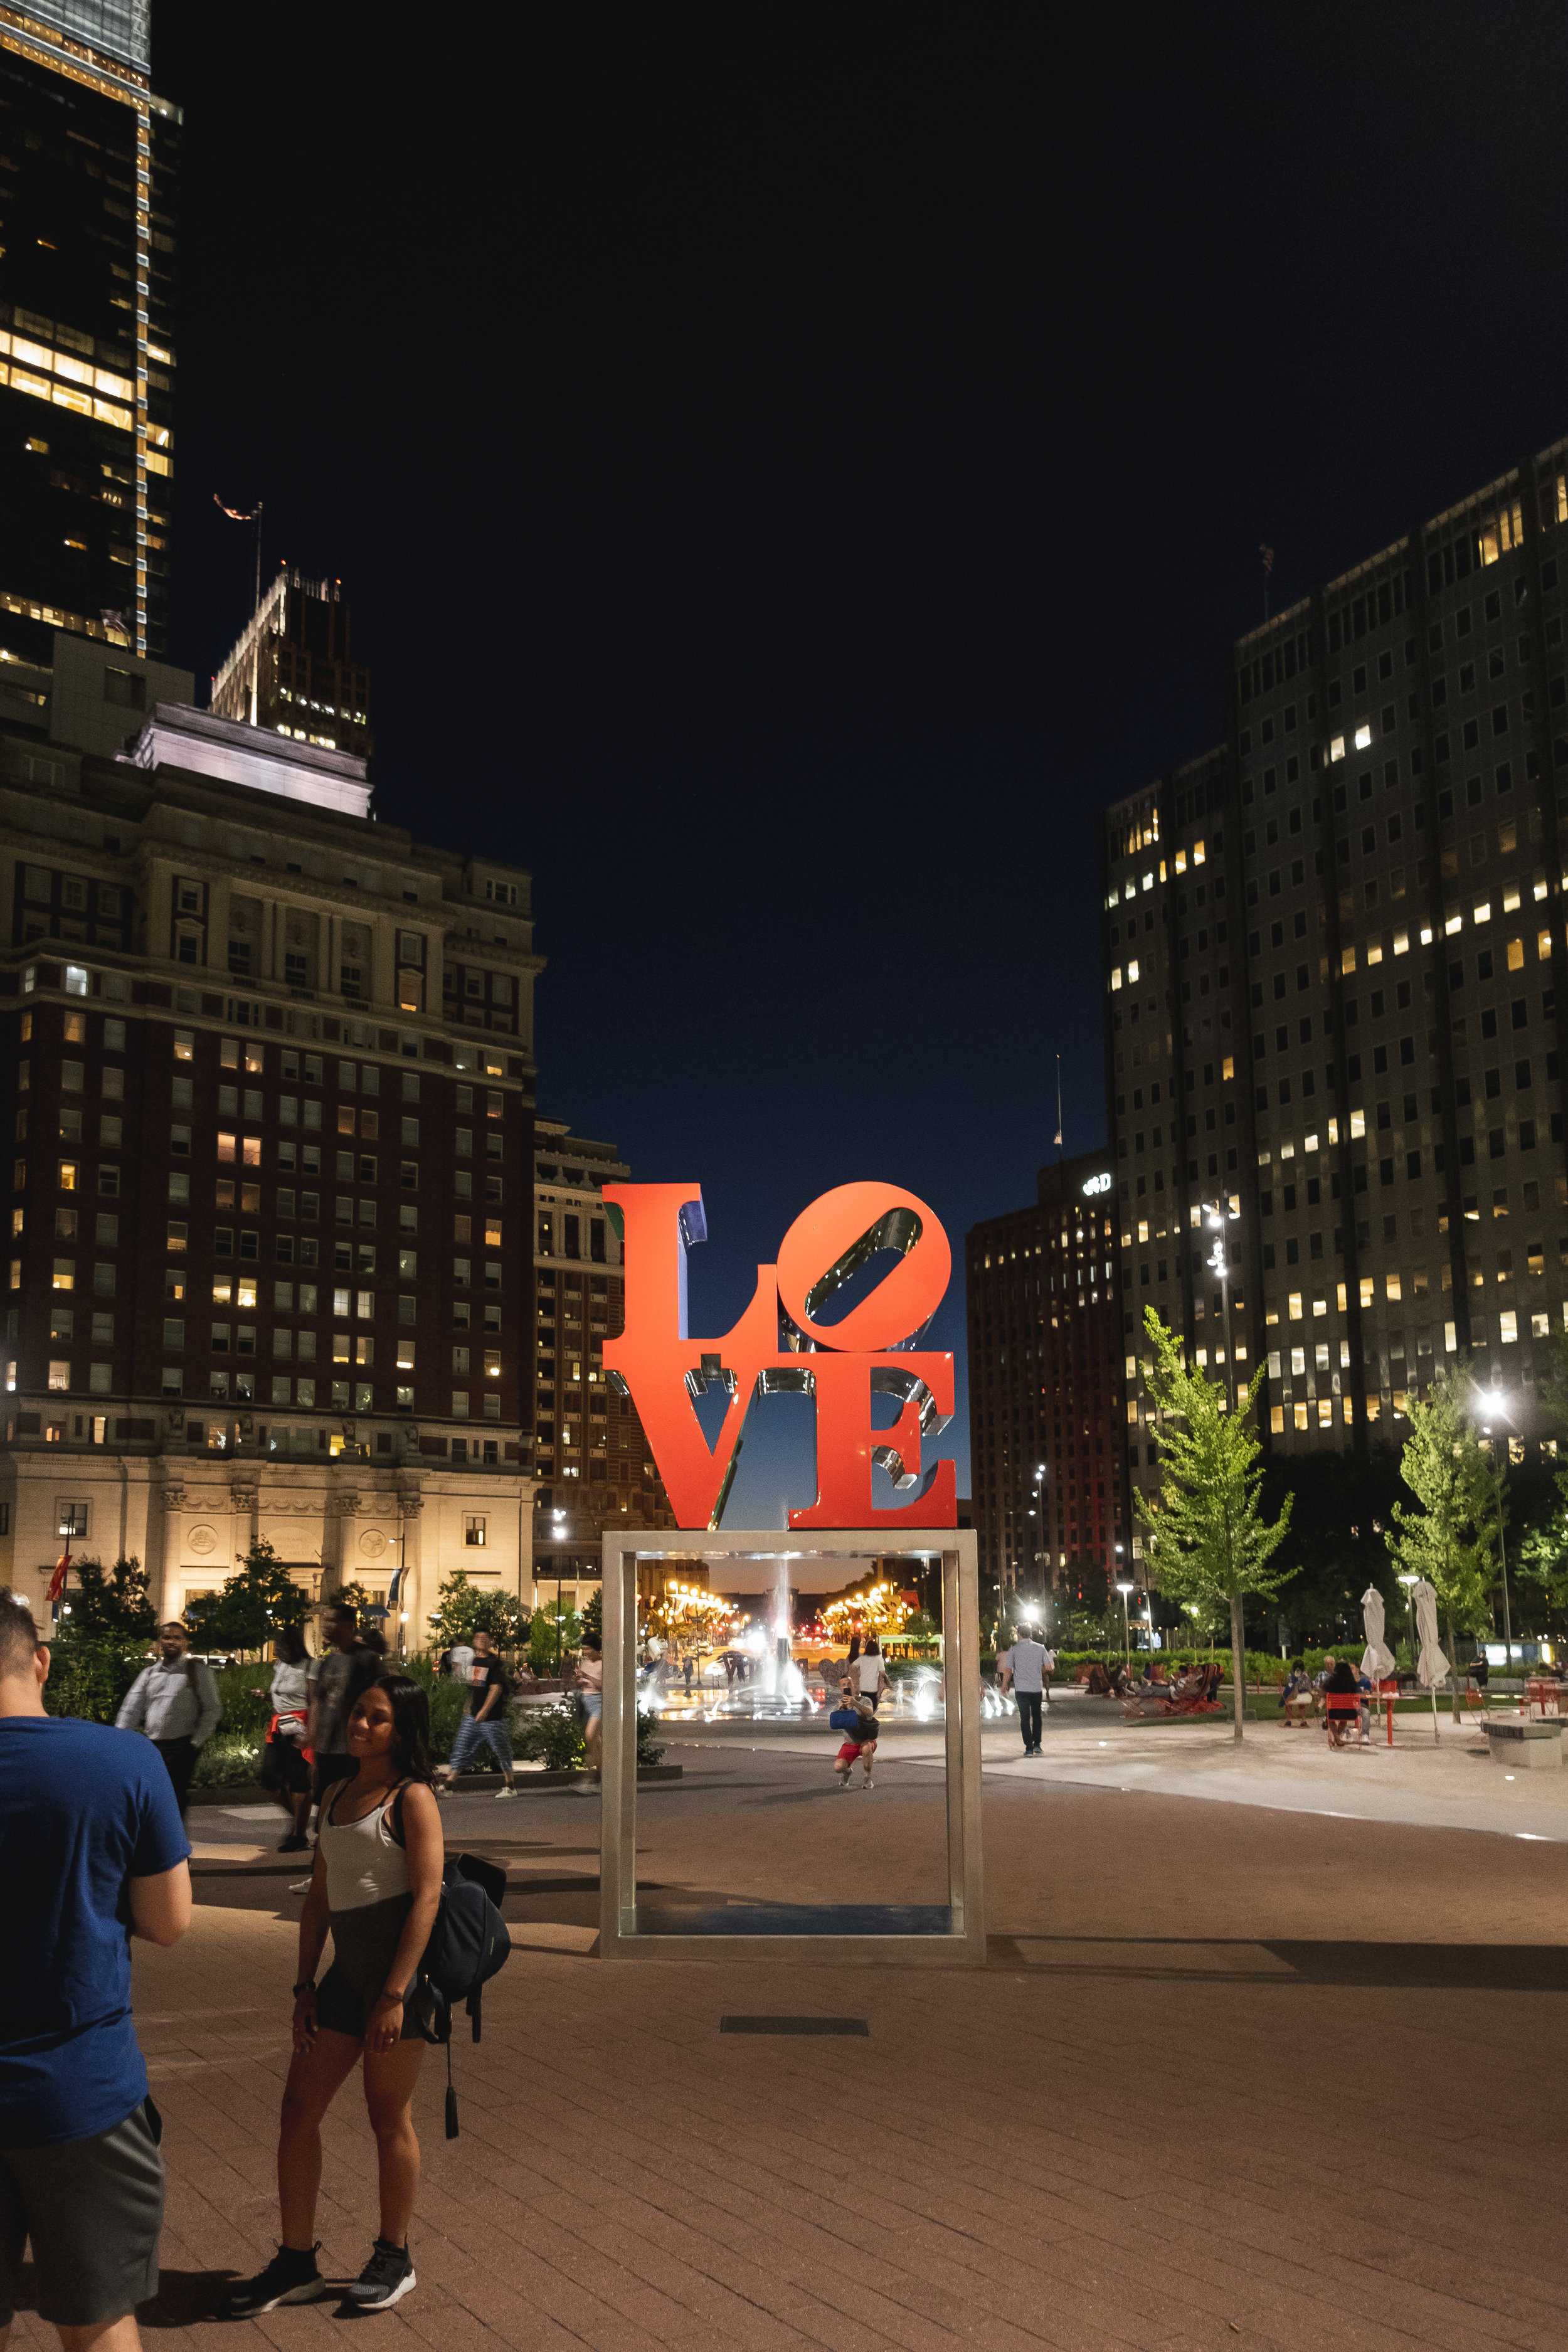 2019_LOVE PARK STATUE_ACTIVITES_THE PHILLY CHECKLIST-6.jpg